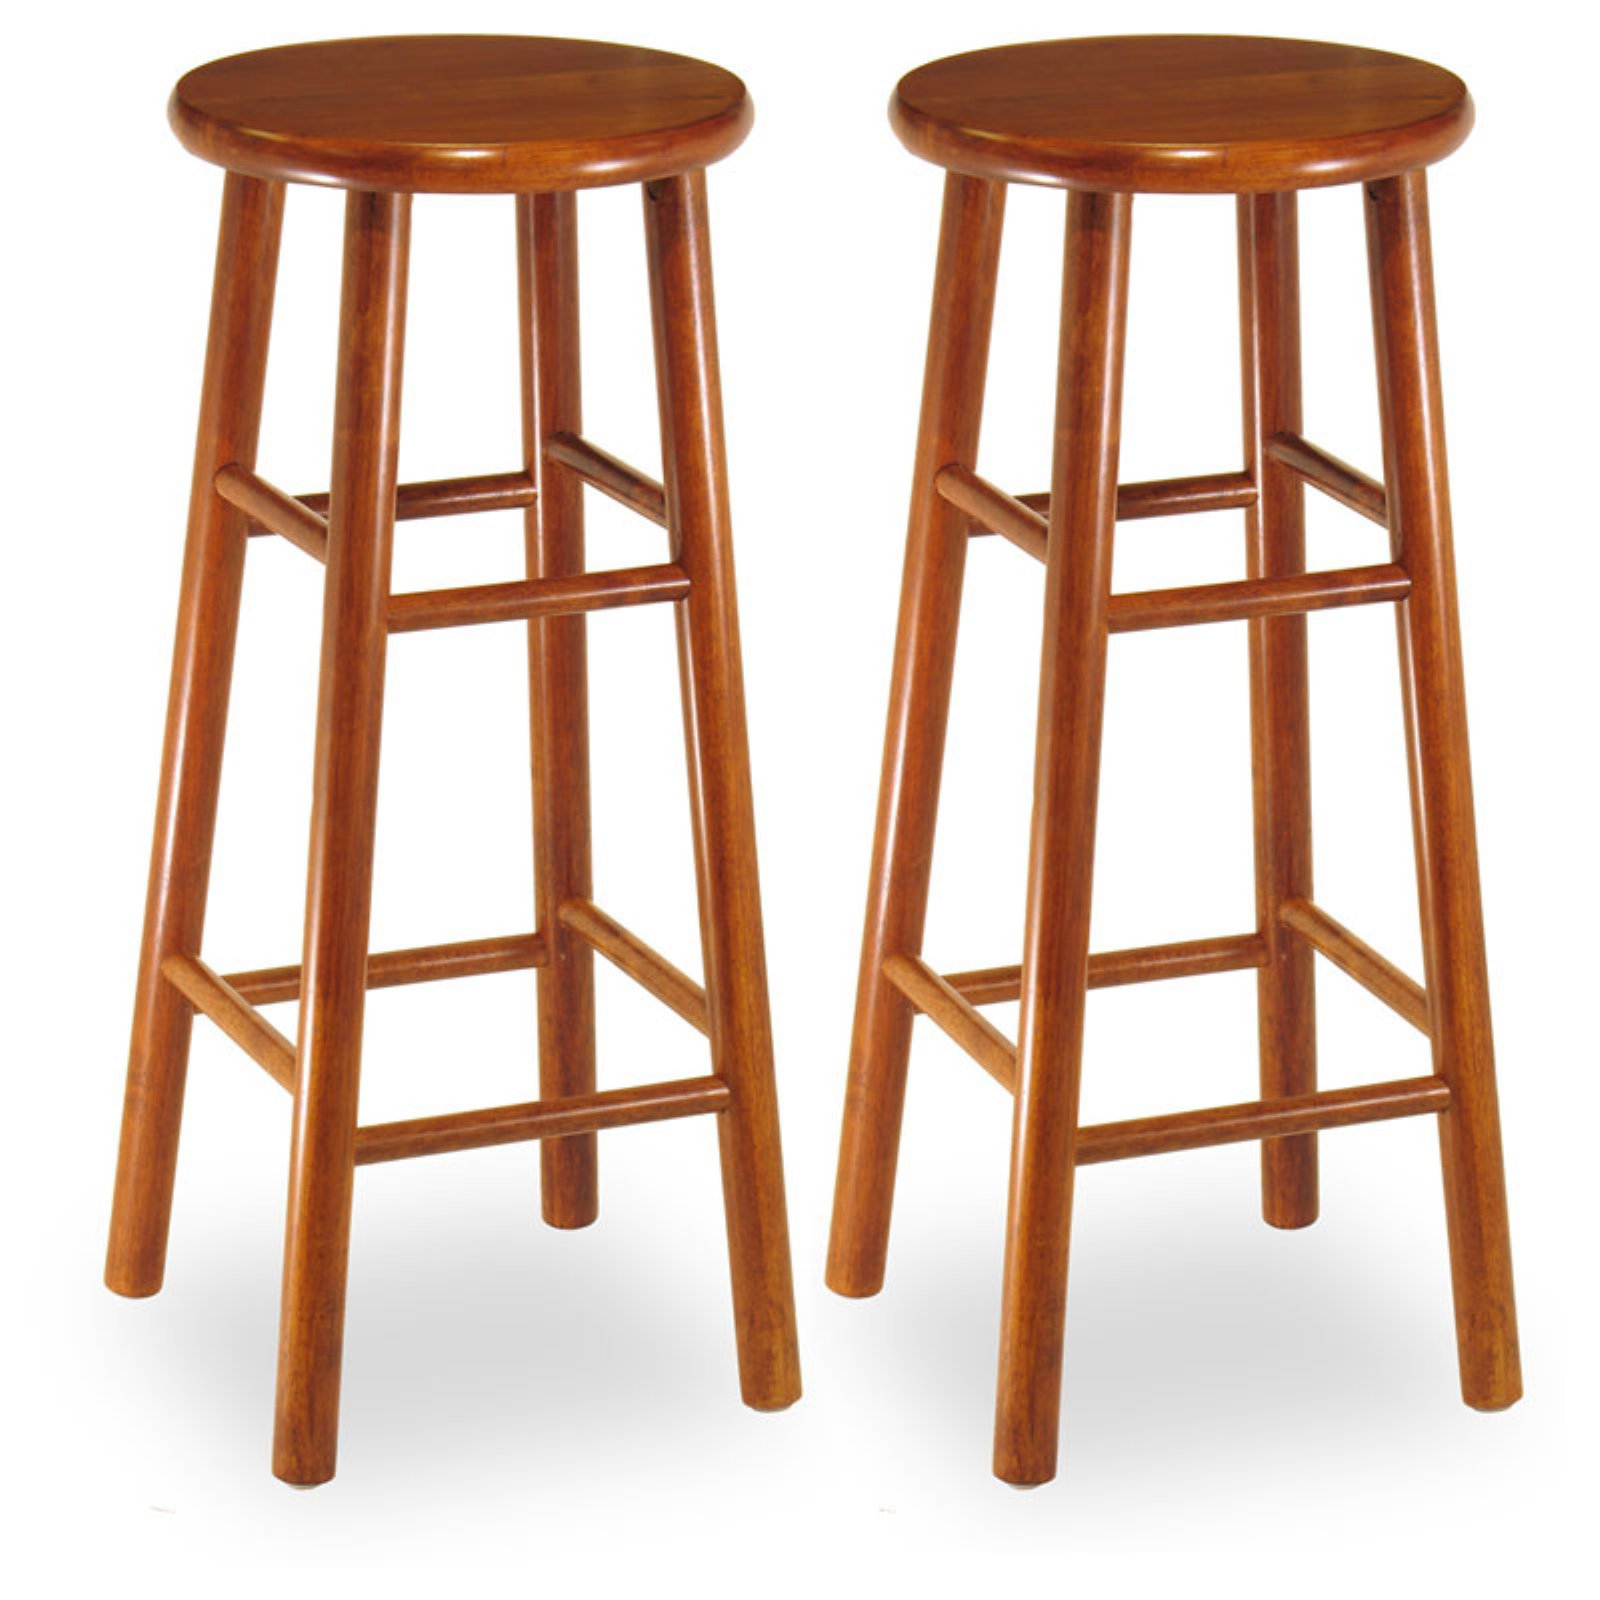 Winsome Wood 30 Inch Commander Beveled Seat Bar Stool   Set Of 2